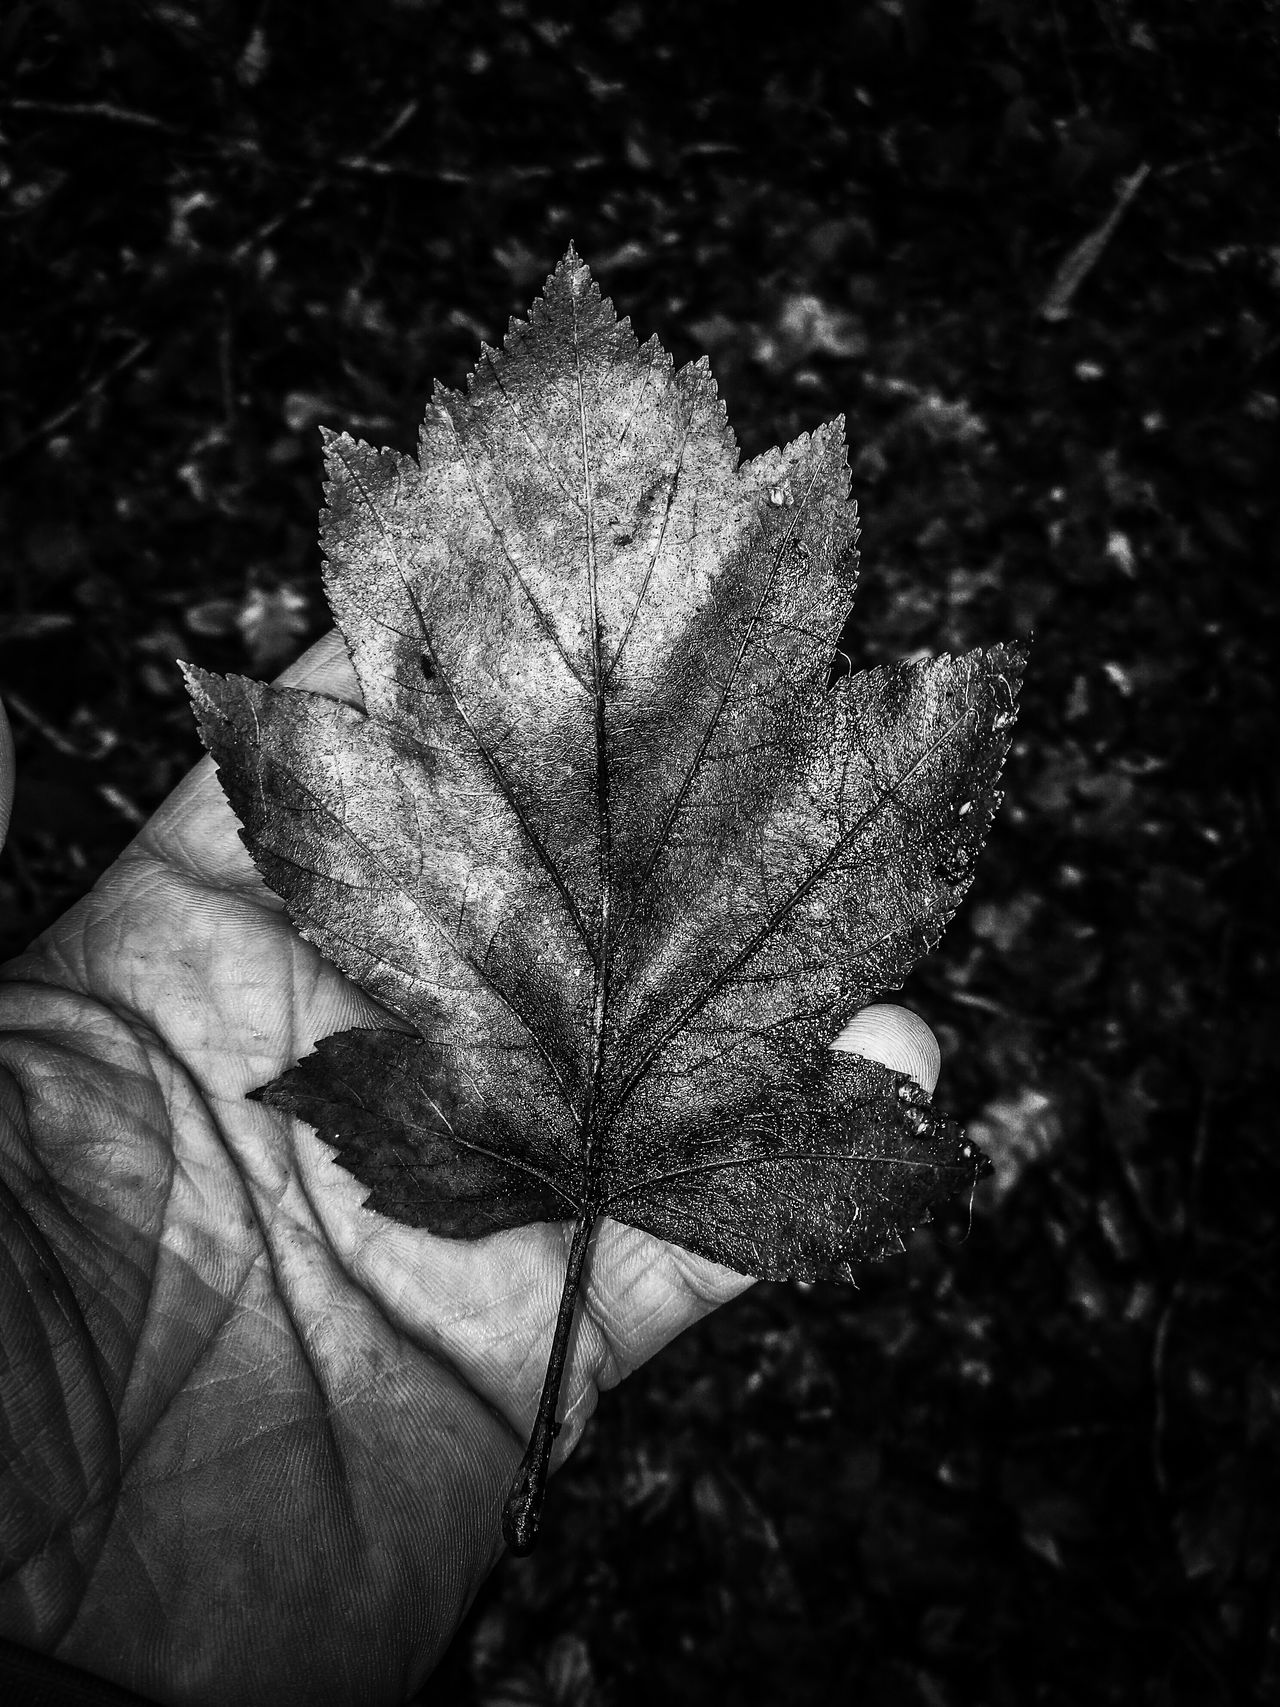 Nature Plant Fragility Beauty In Nature Close-up Leaf Leaf Vein Outdoors Woodlands Blackandwhite Photography Hand Dead Leaf Tree Day Hand Print Textured Skin Leaf Texture